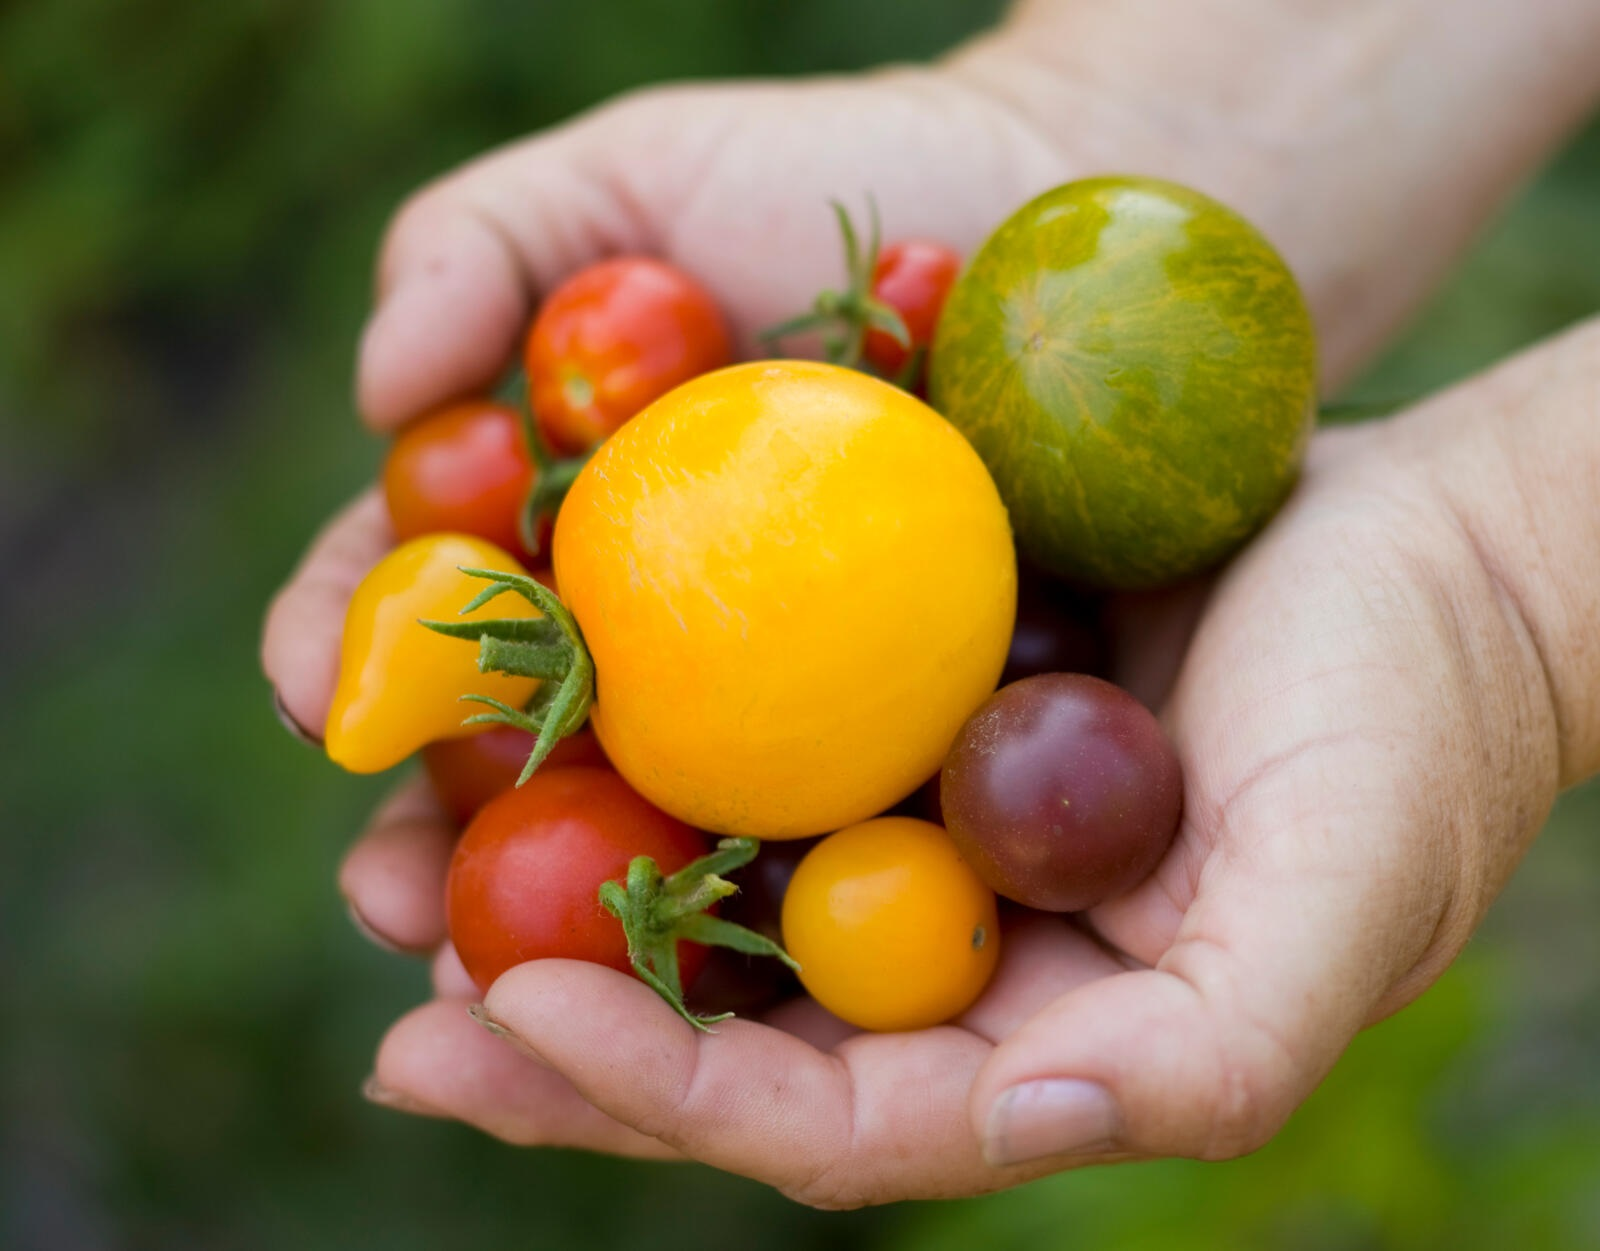 woman's hands holding freshly picked cherry tomatoes of varying colors